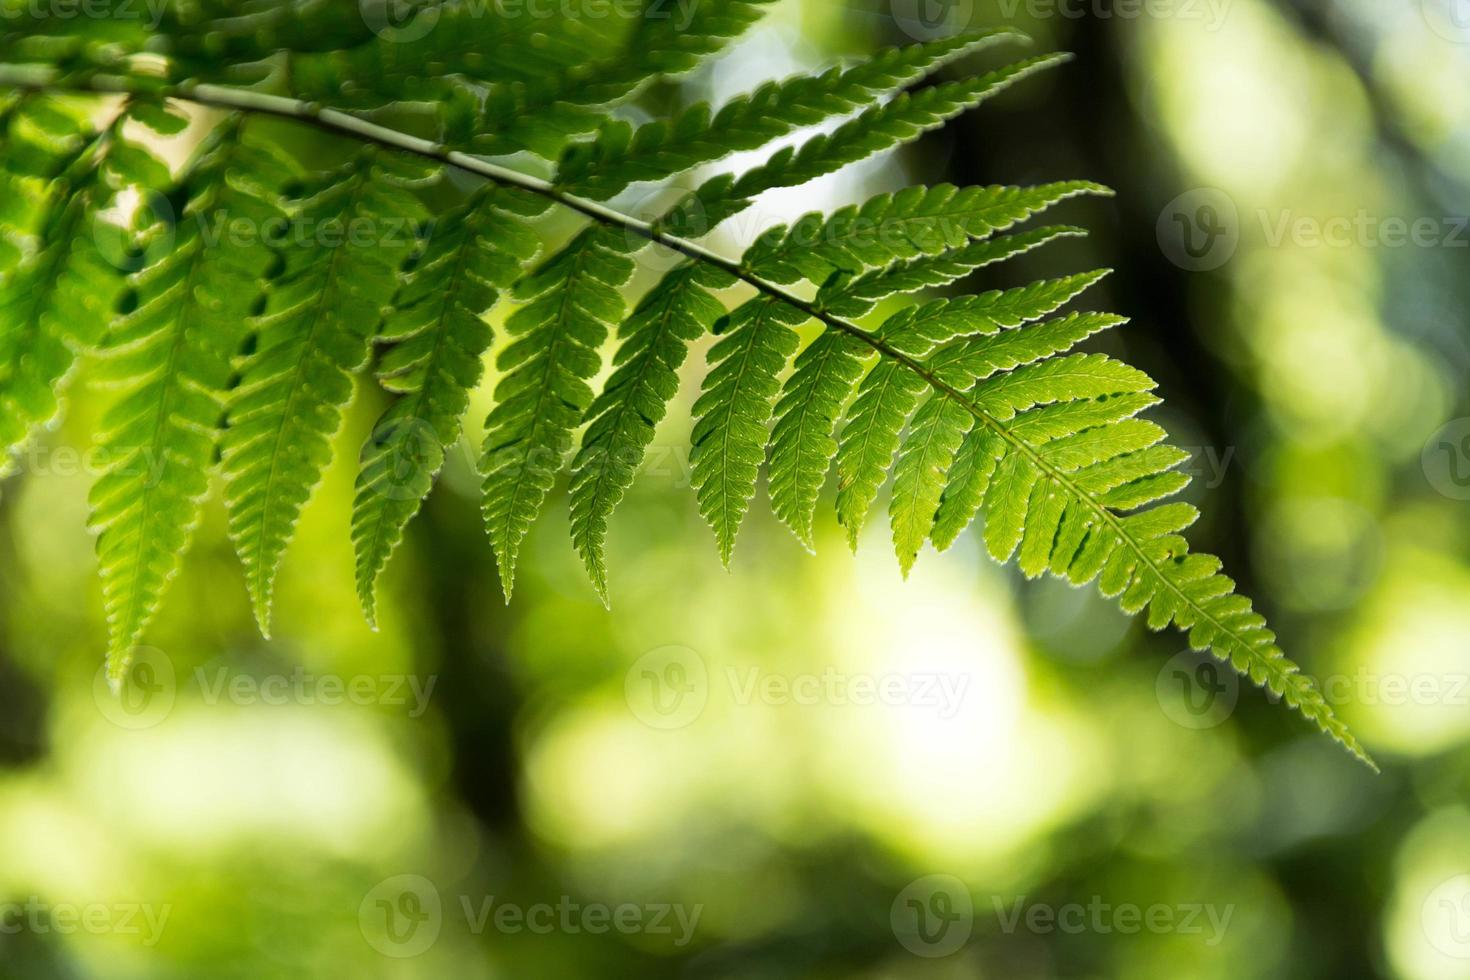 Fern leaf with water drops close-up photo